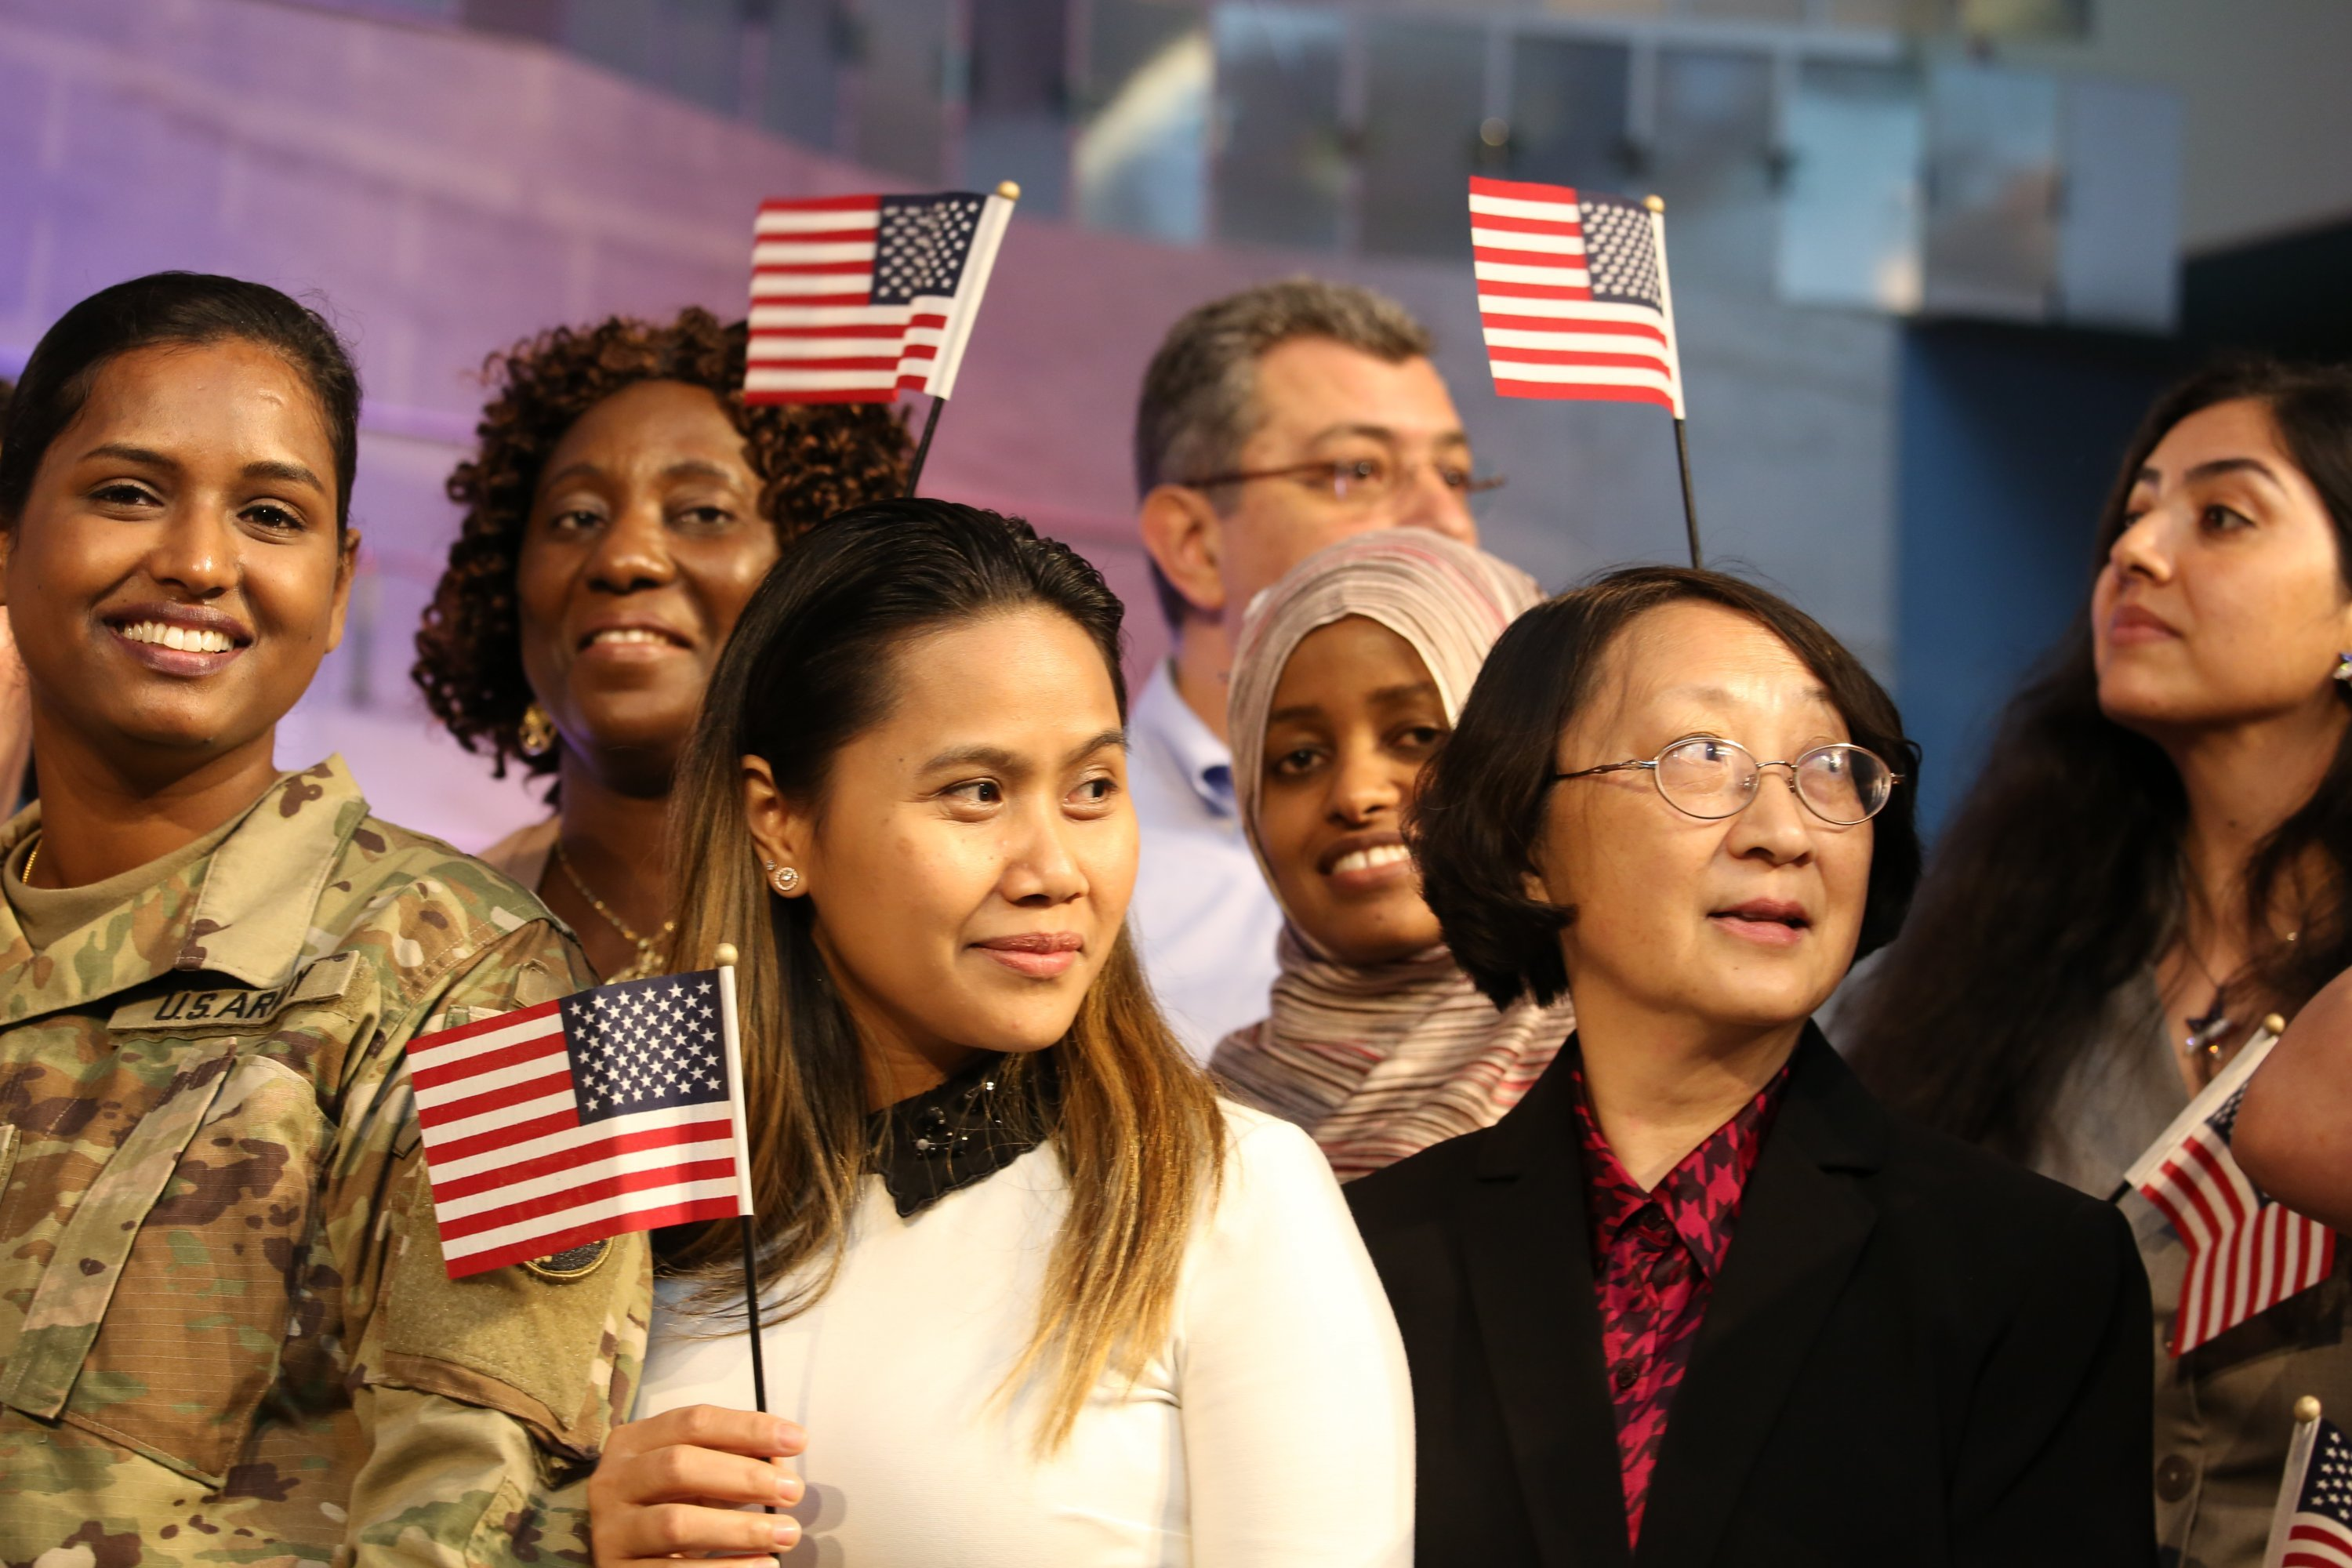 Photographs of Immigrants Becoming U.S. Citizens: Newly minted U.S. citizens wave their flags during a naturalization service at the American History Museum.